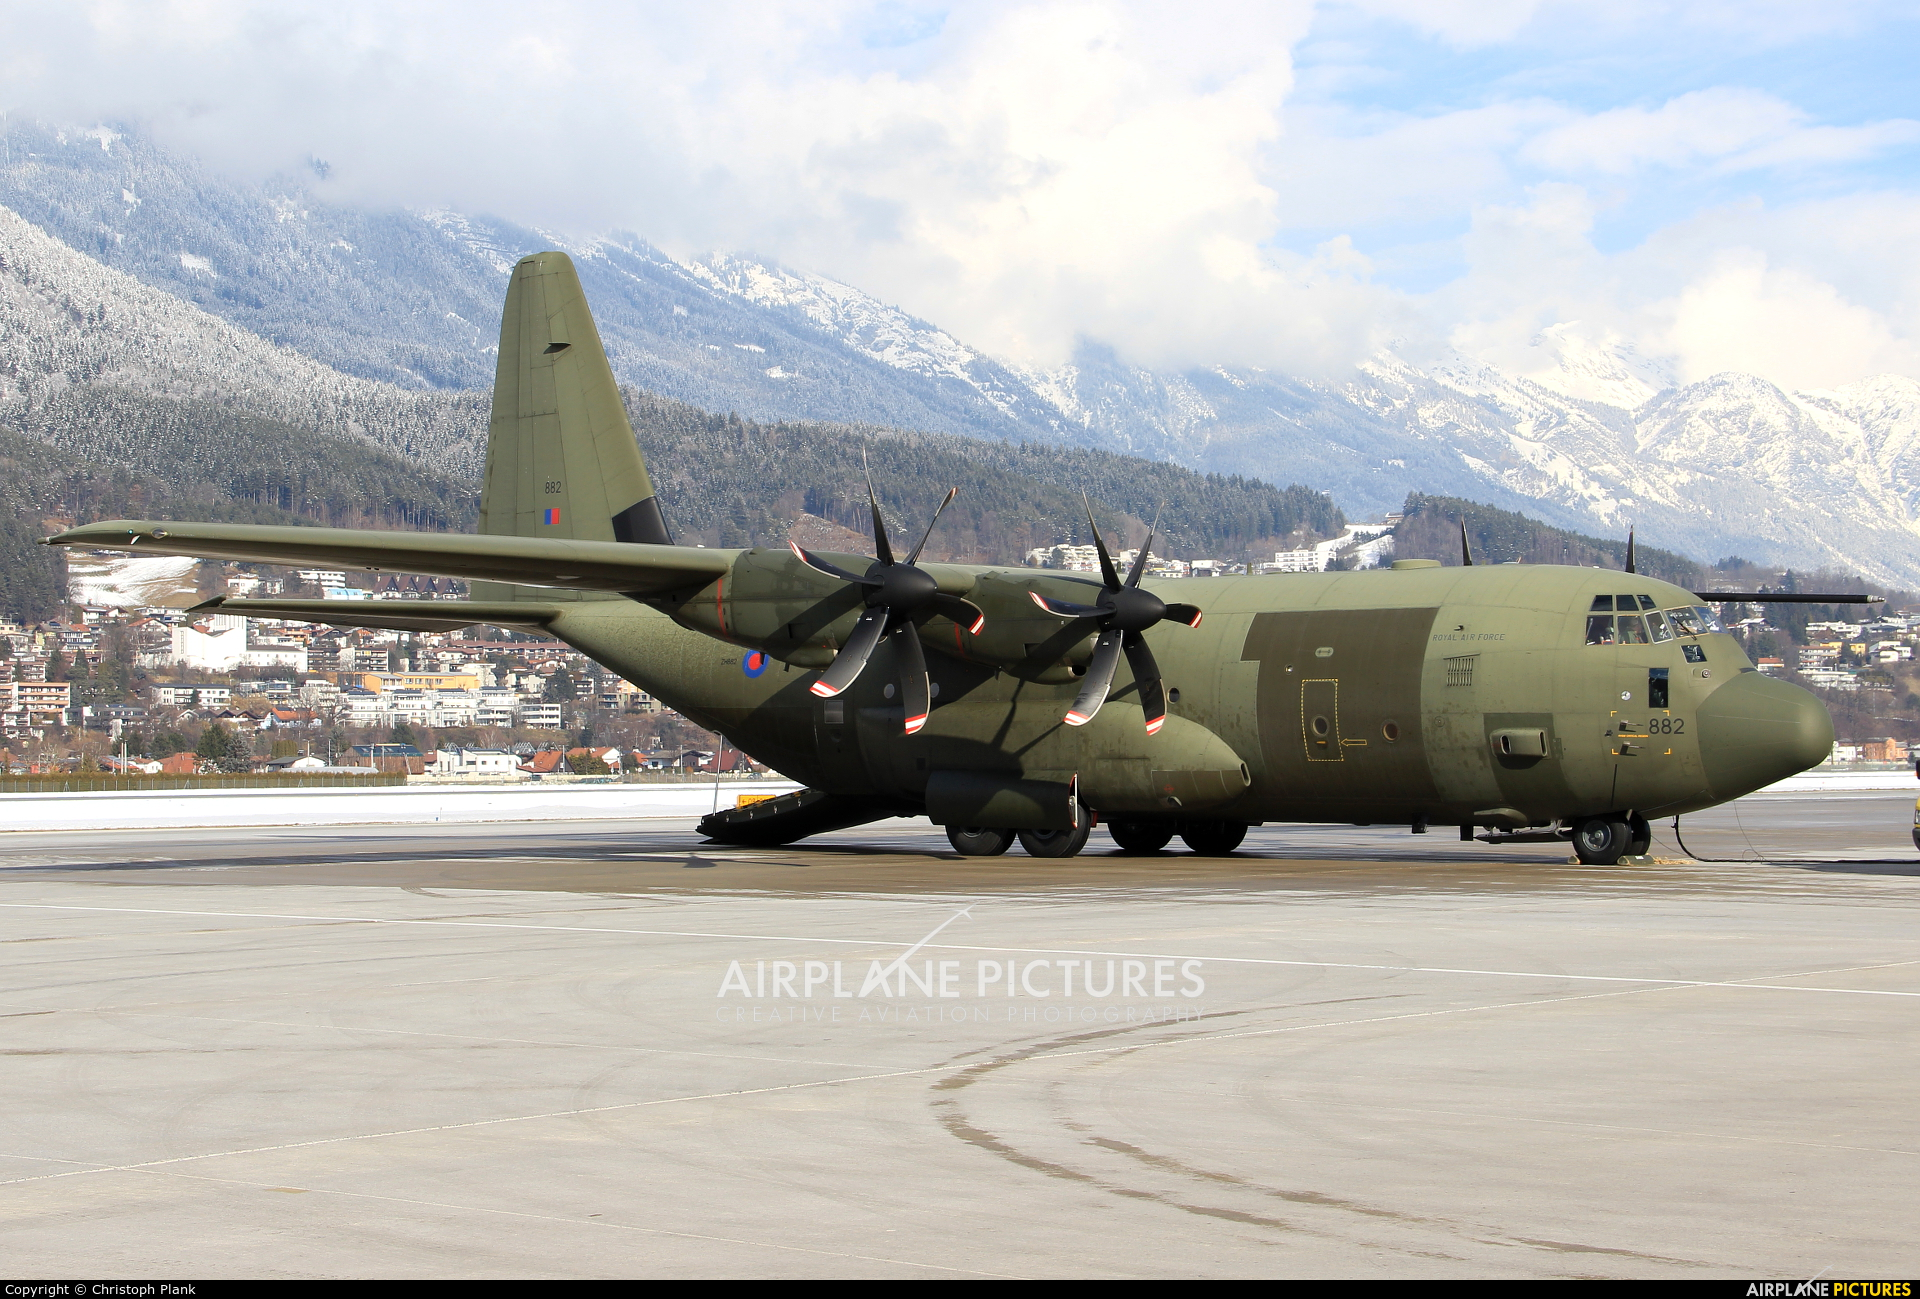 Royal Air Force ZH882 aircraft at Innsbruck